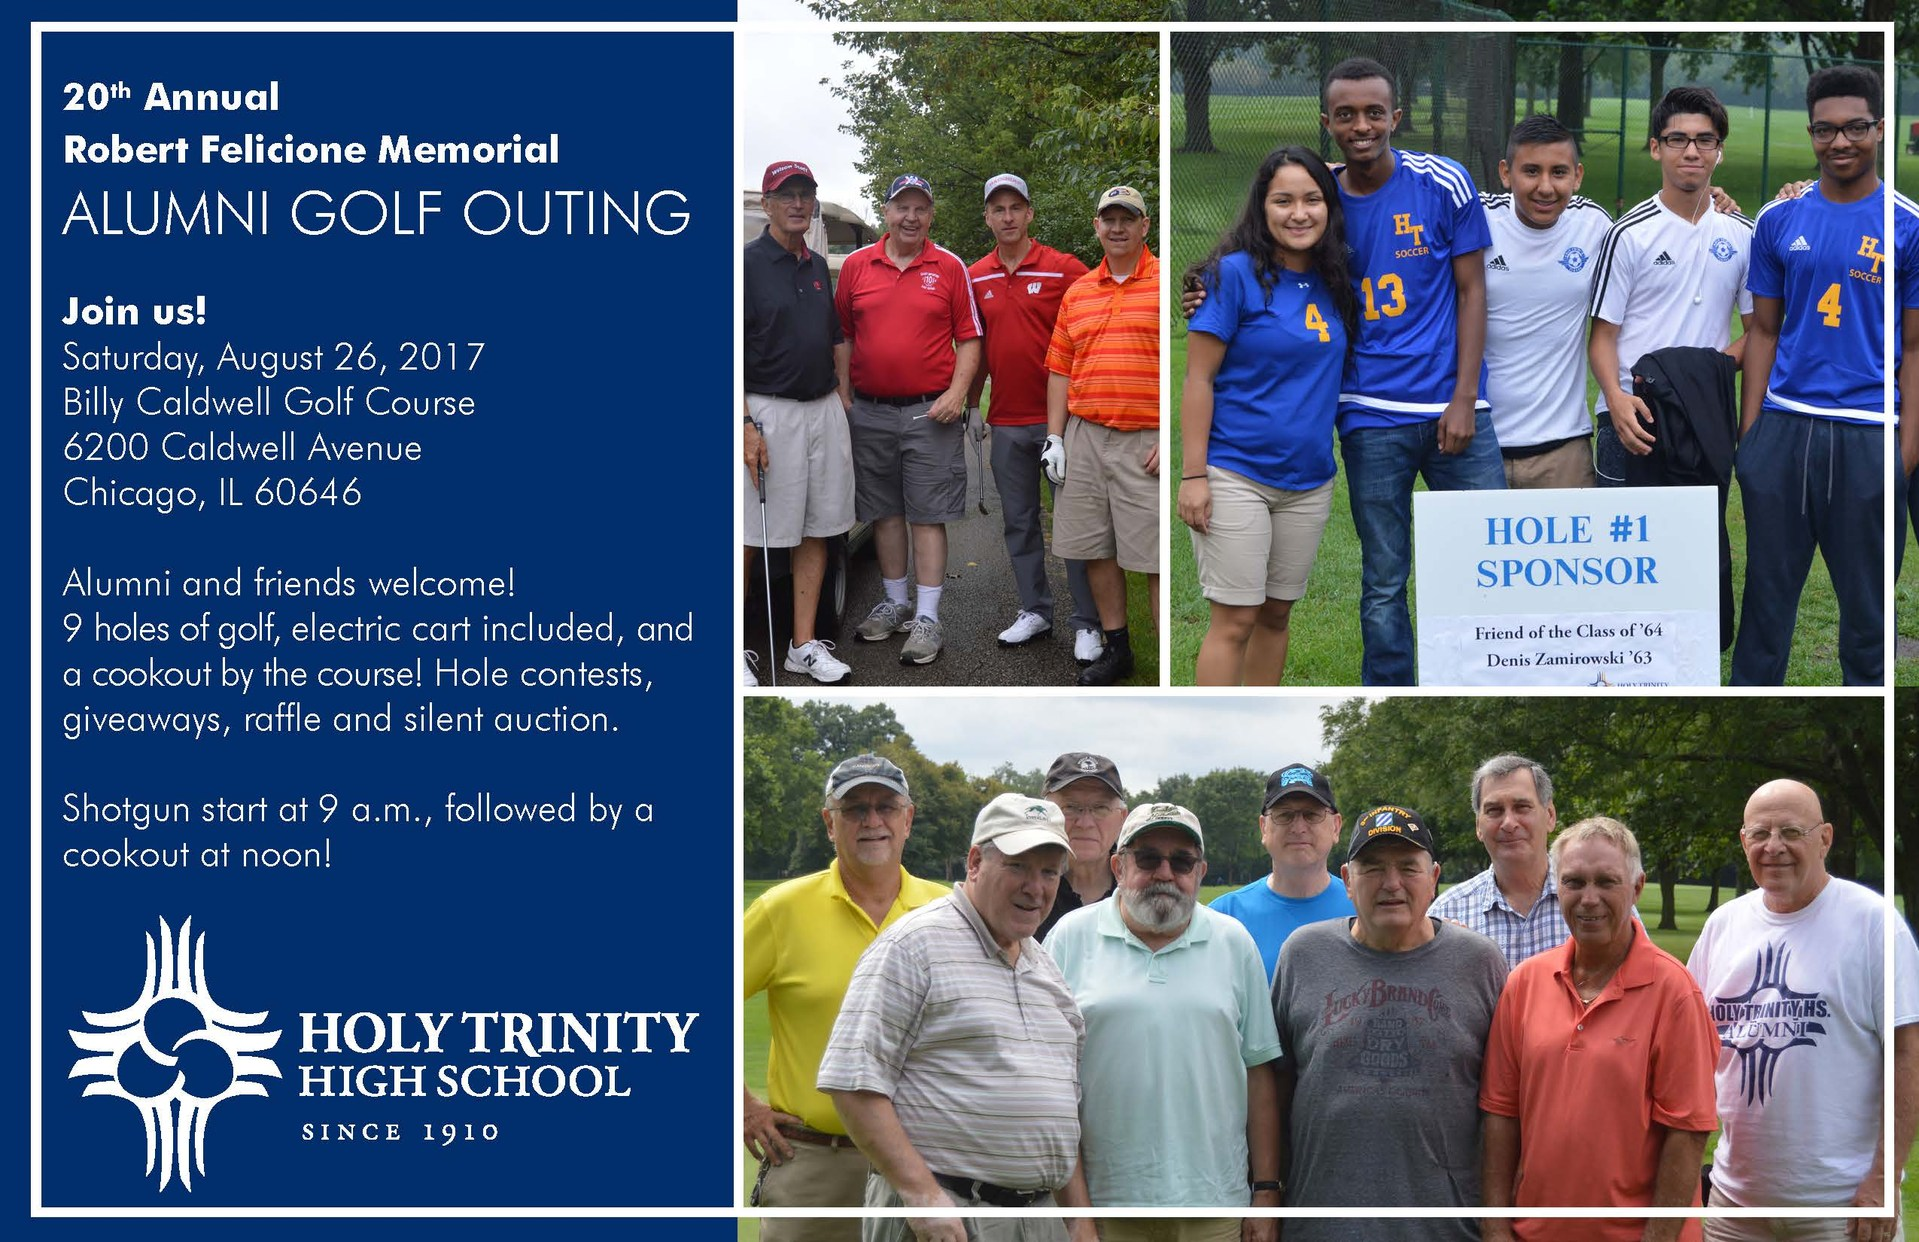 You're invited to the 2017 Alumni Golf Outing